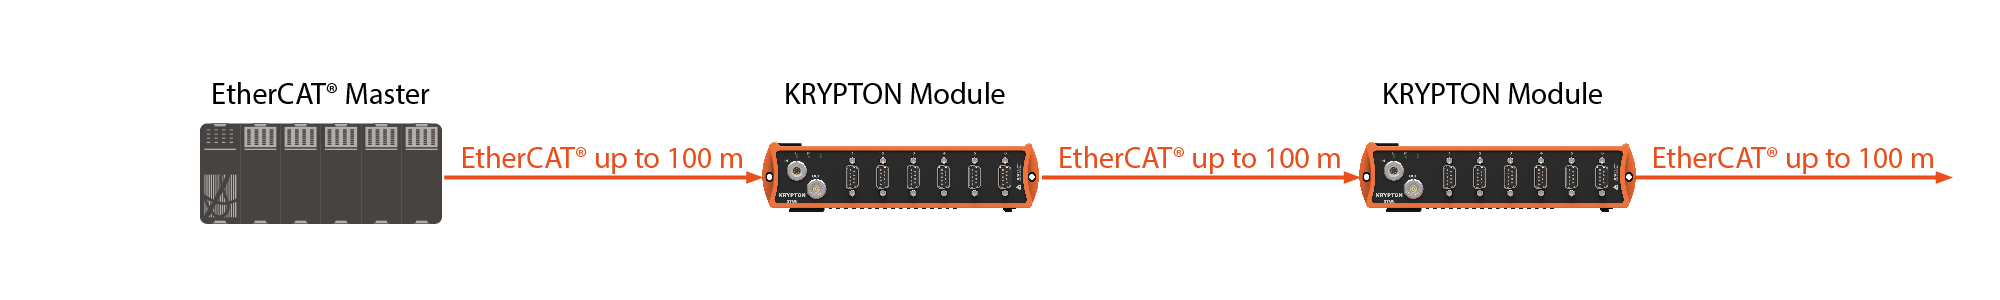 Distributed KRYPTON modules interconnect via EtherCAT